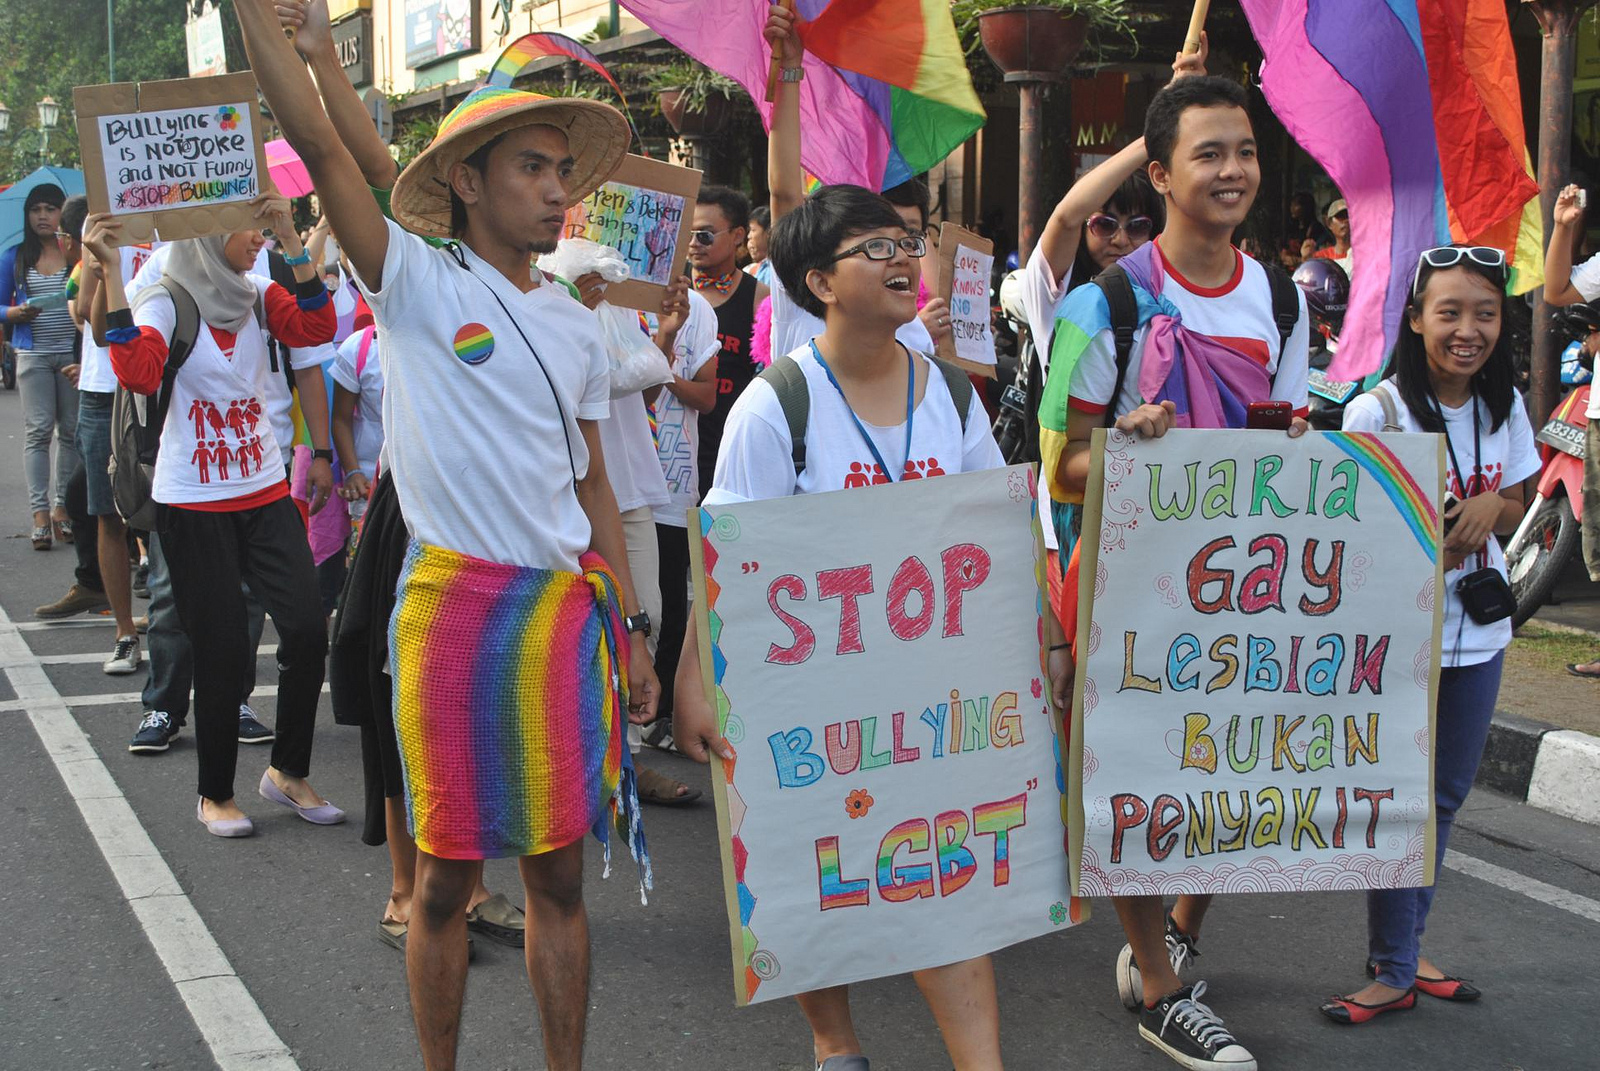 The threats faced by gay people in unfriendly countries are